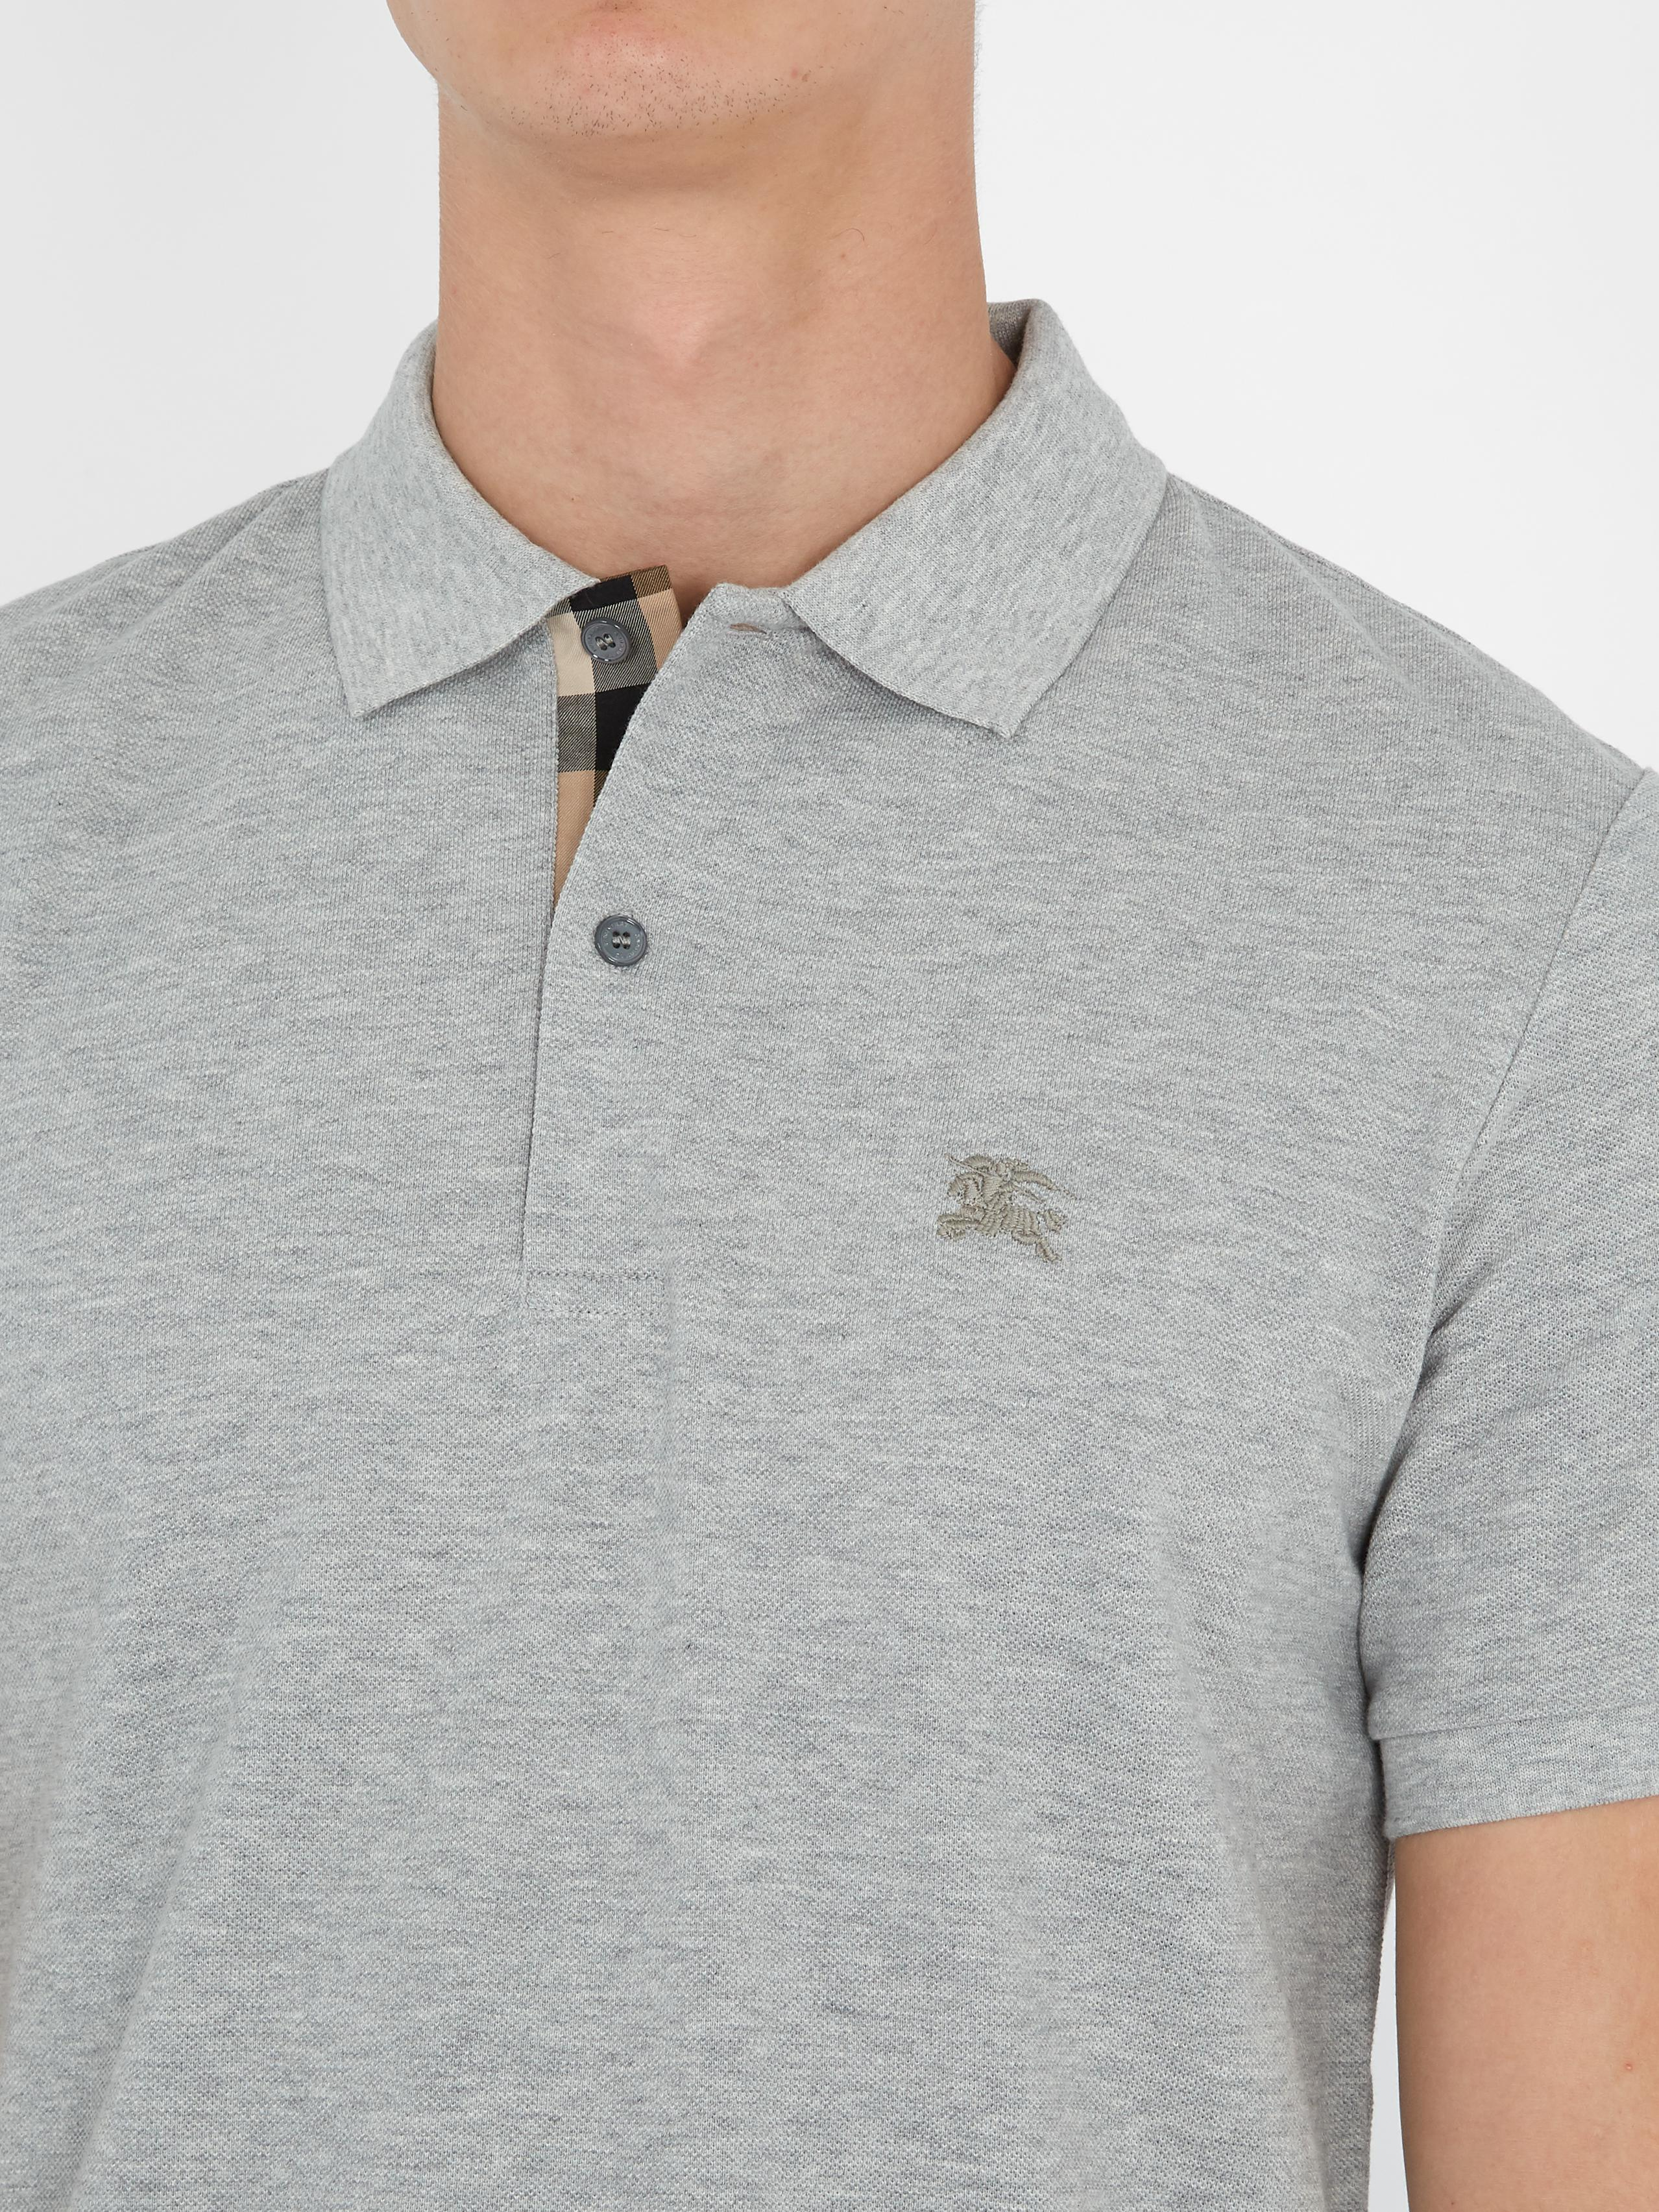 127ee9eb212b Lyst - Burberry Oxford Cotton-piqué Polo Shirt in Gray for Men